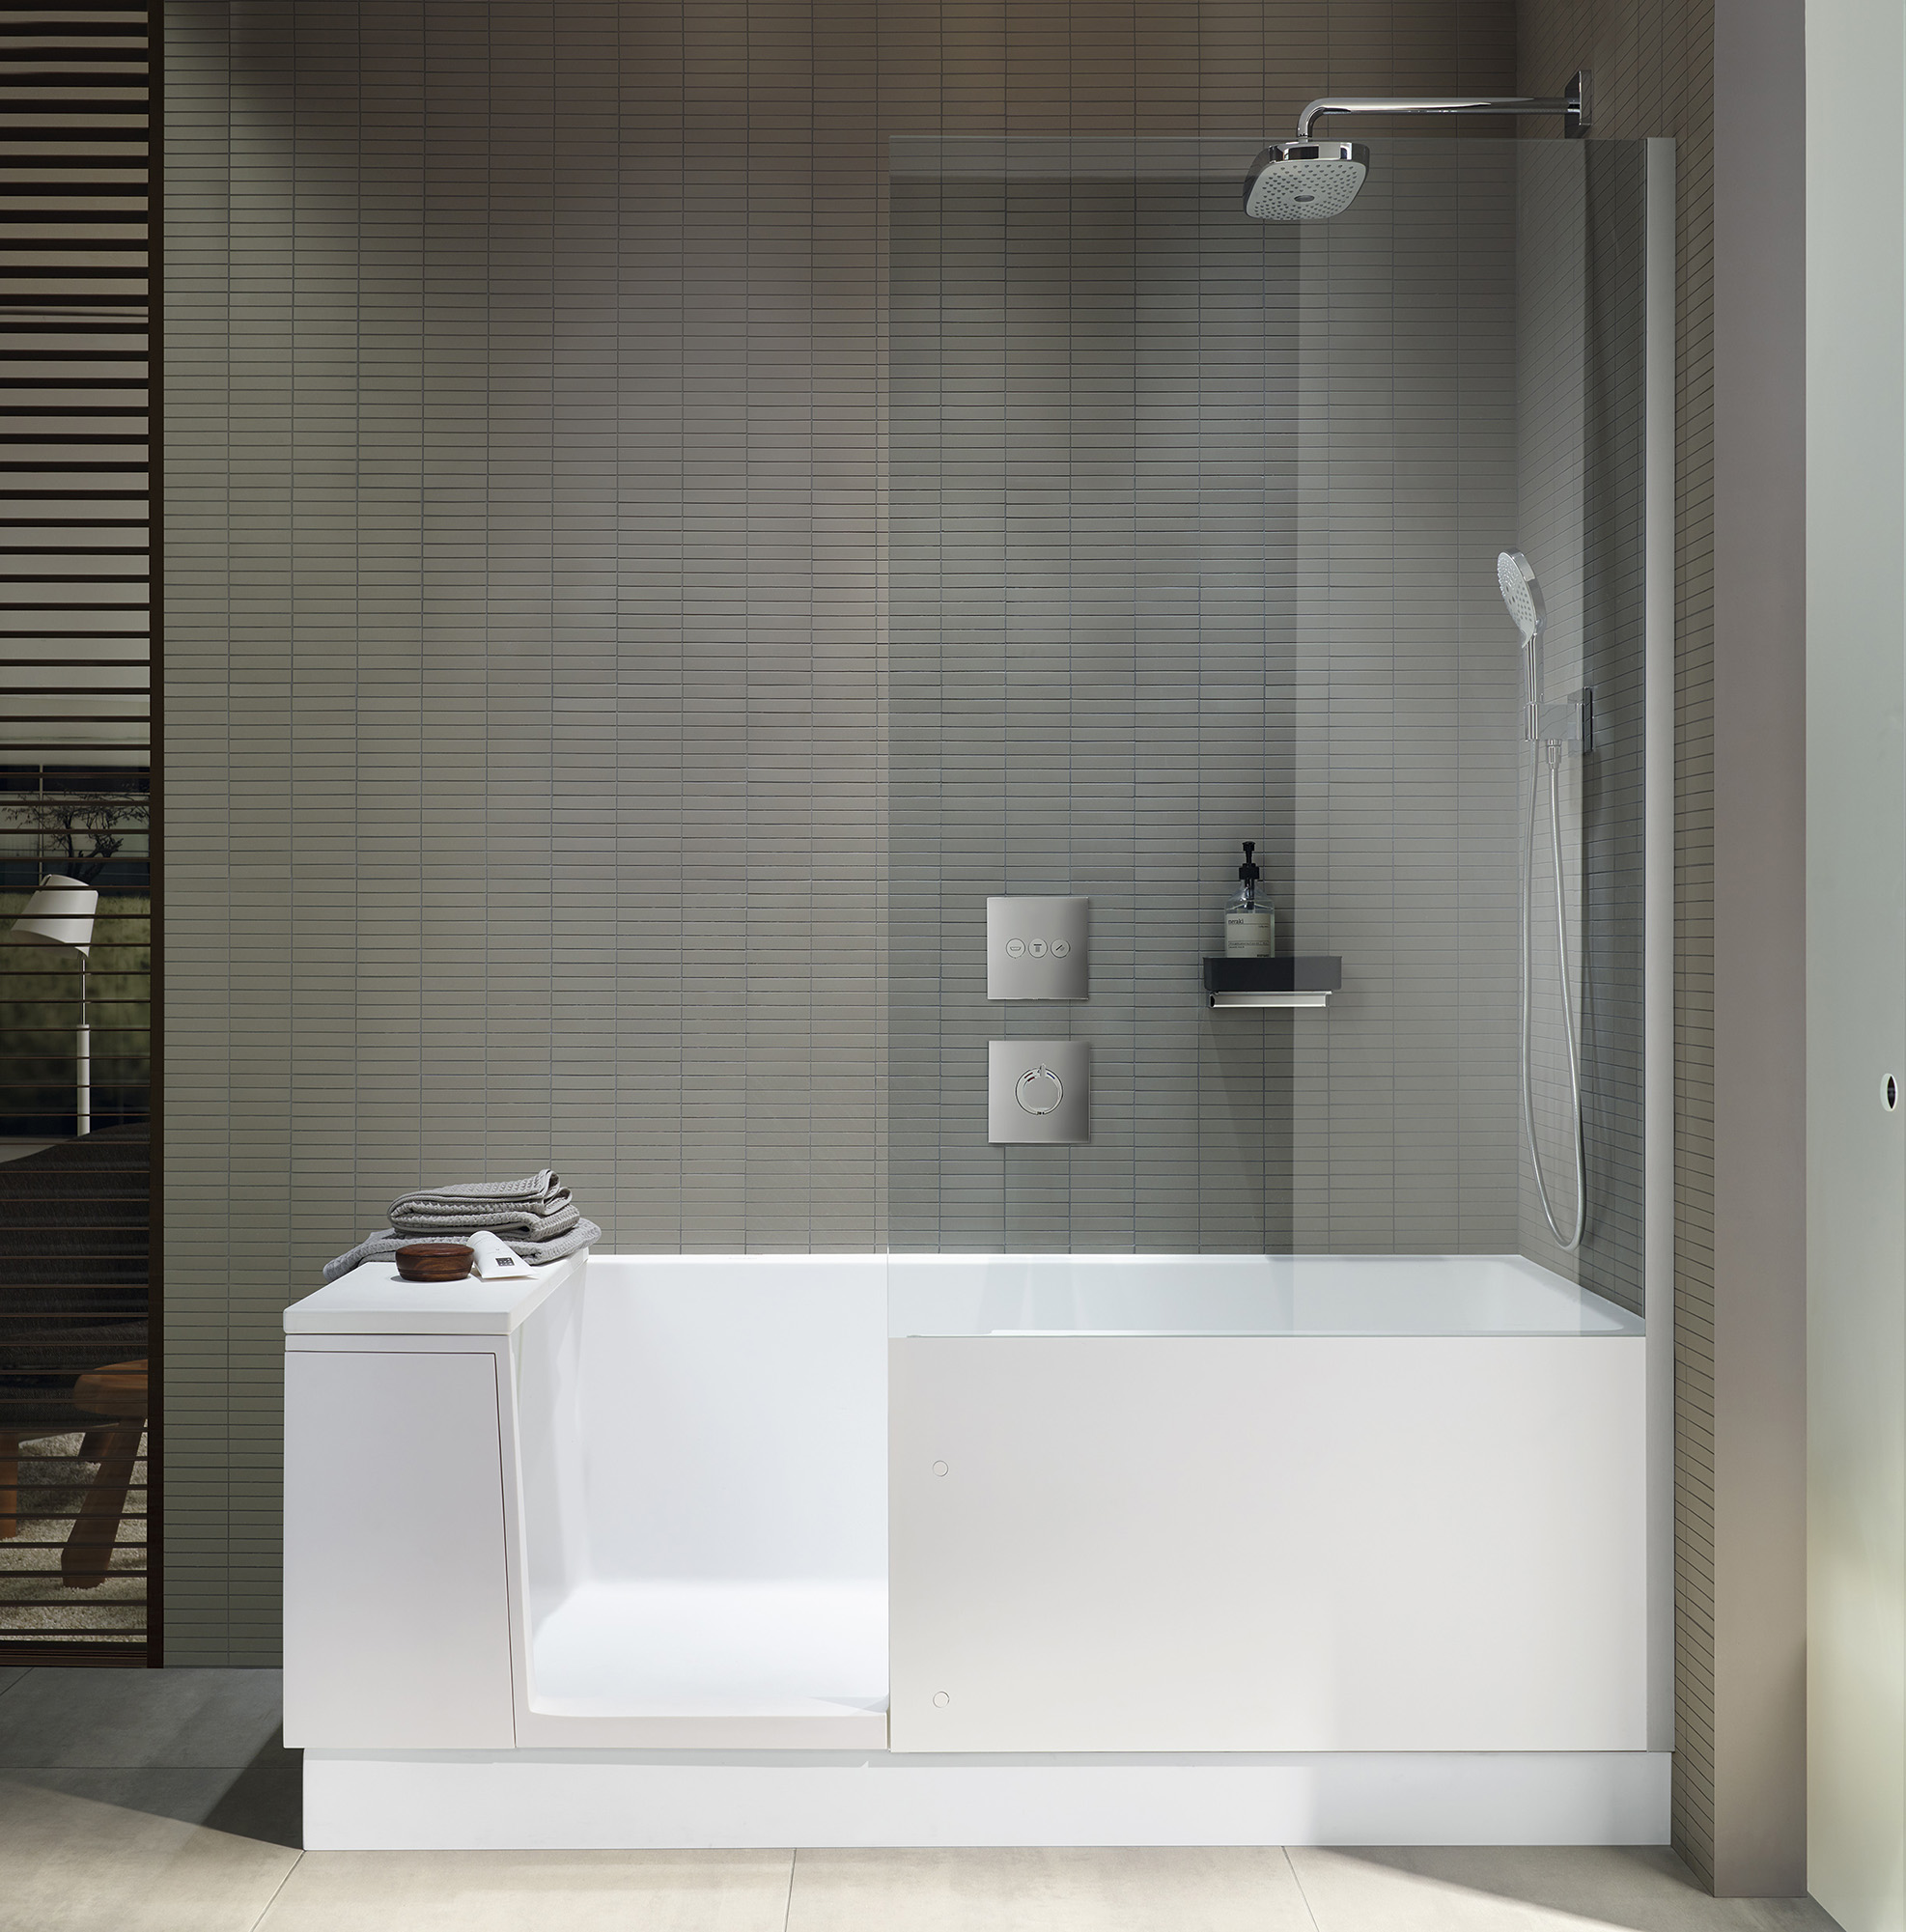 1 duravit shower + bath (1)